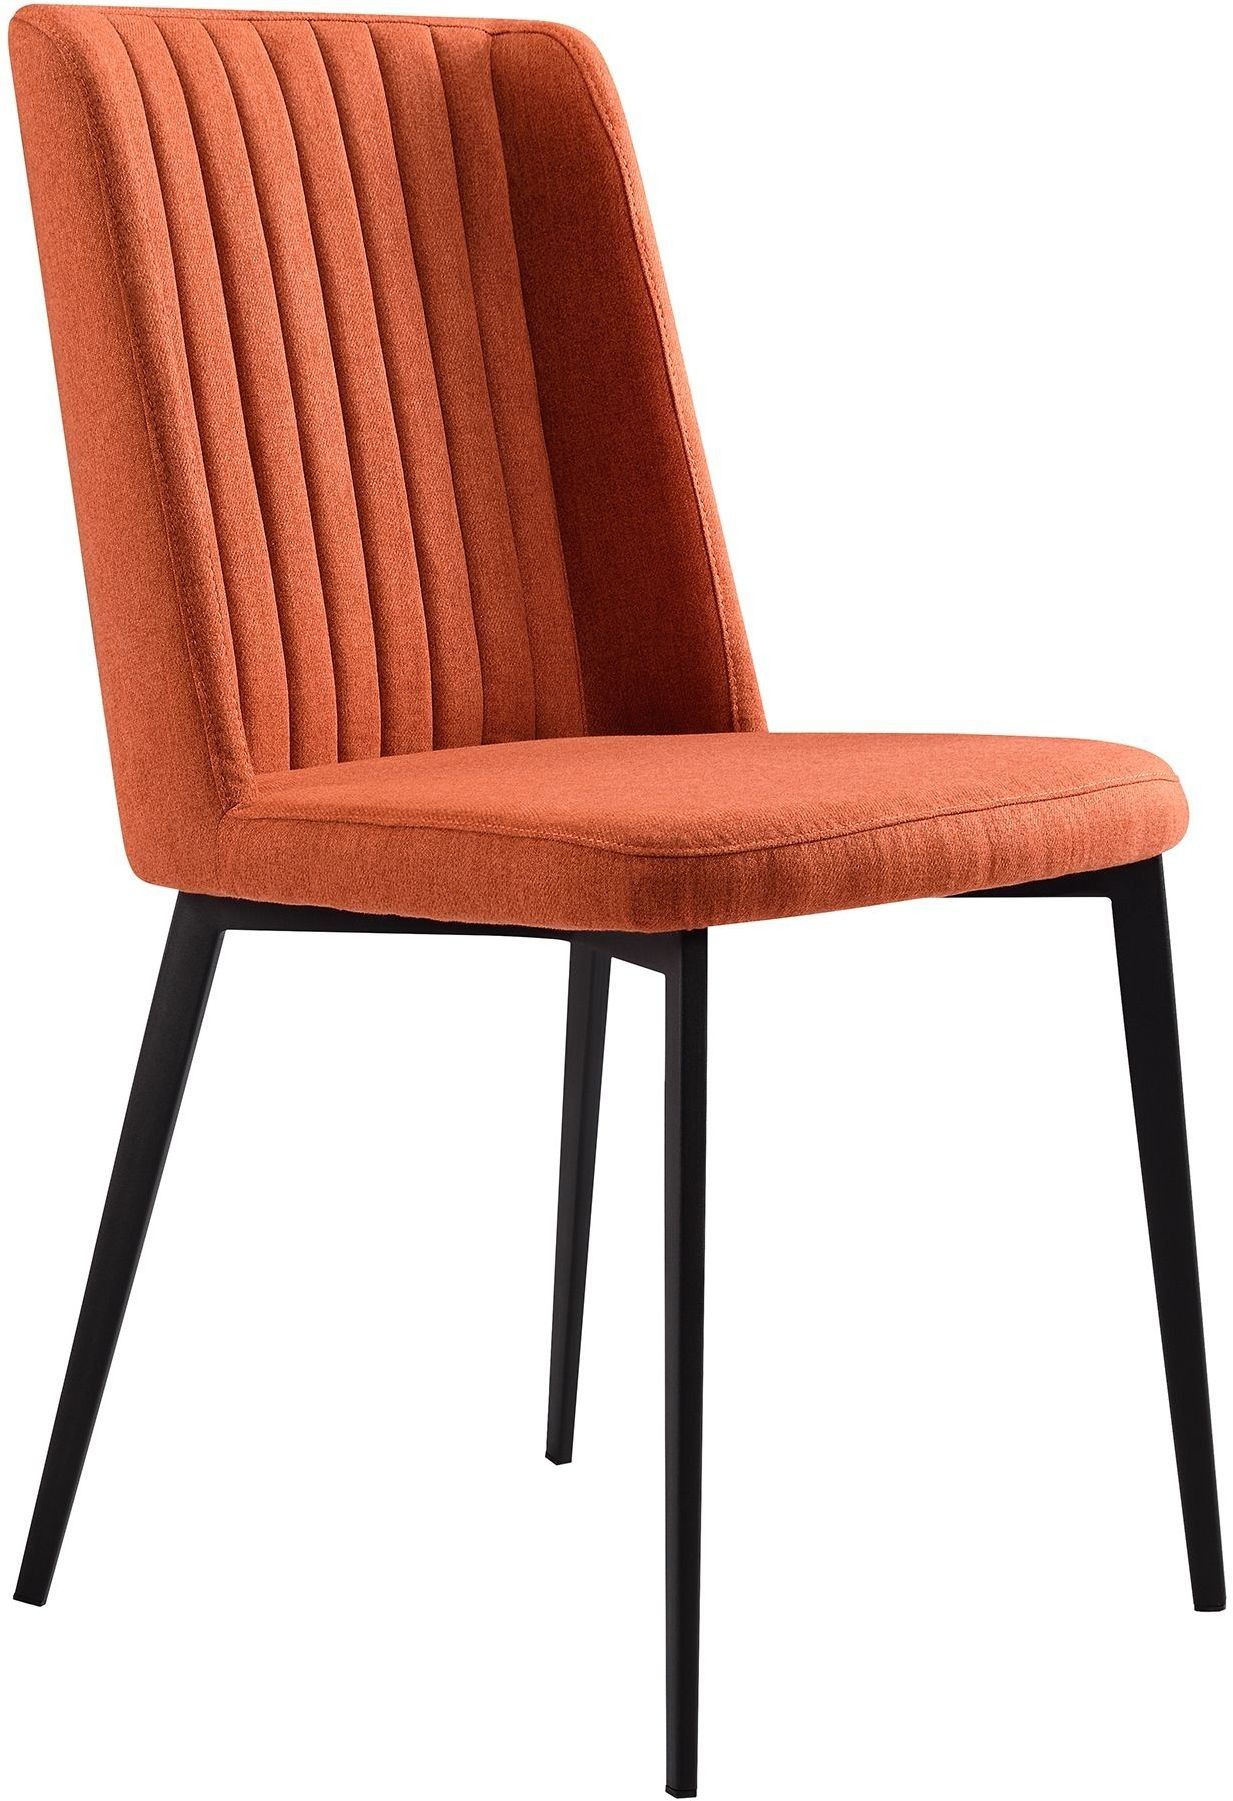 orange upholstered chair covers hire dublin maine dining side set of 2 from